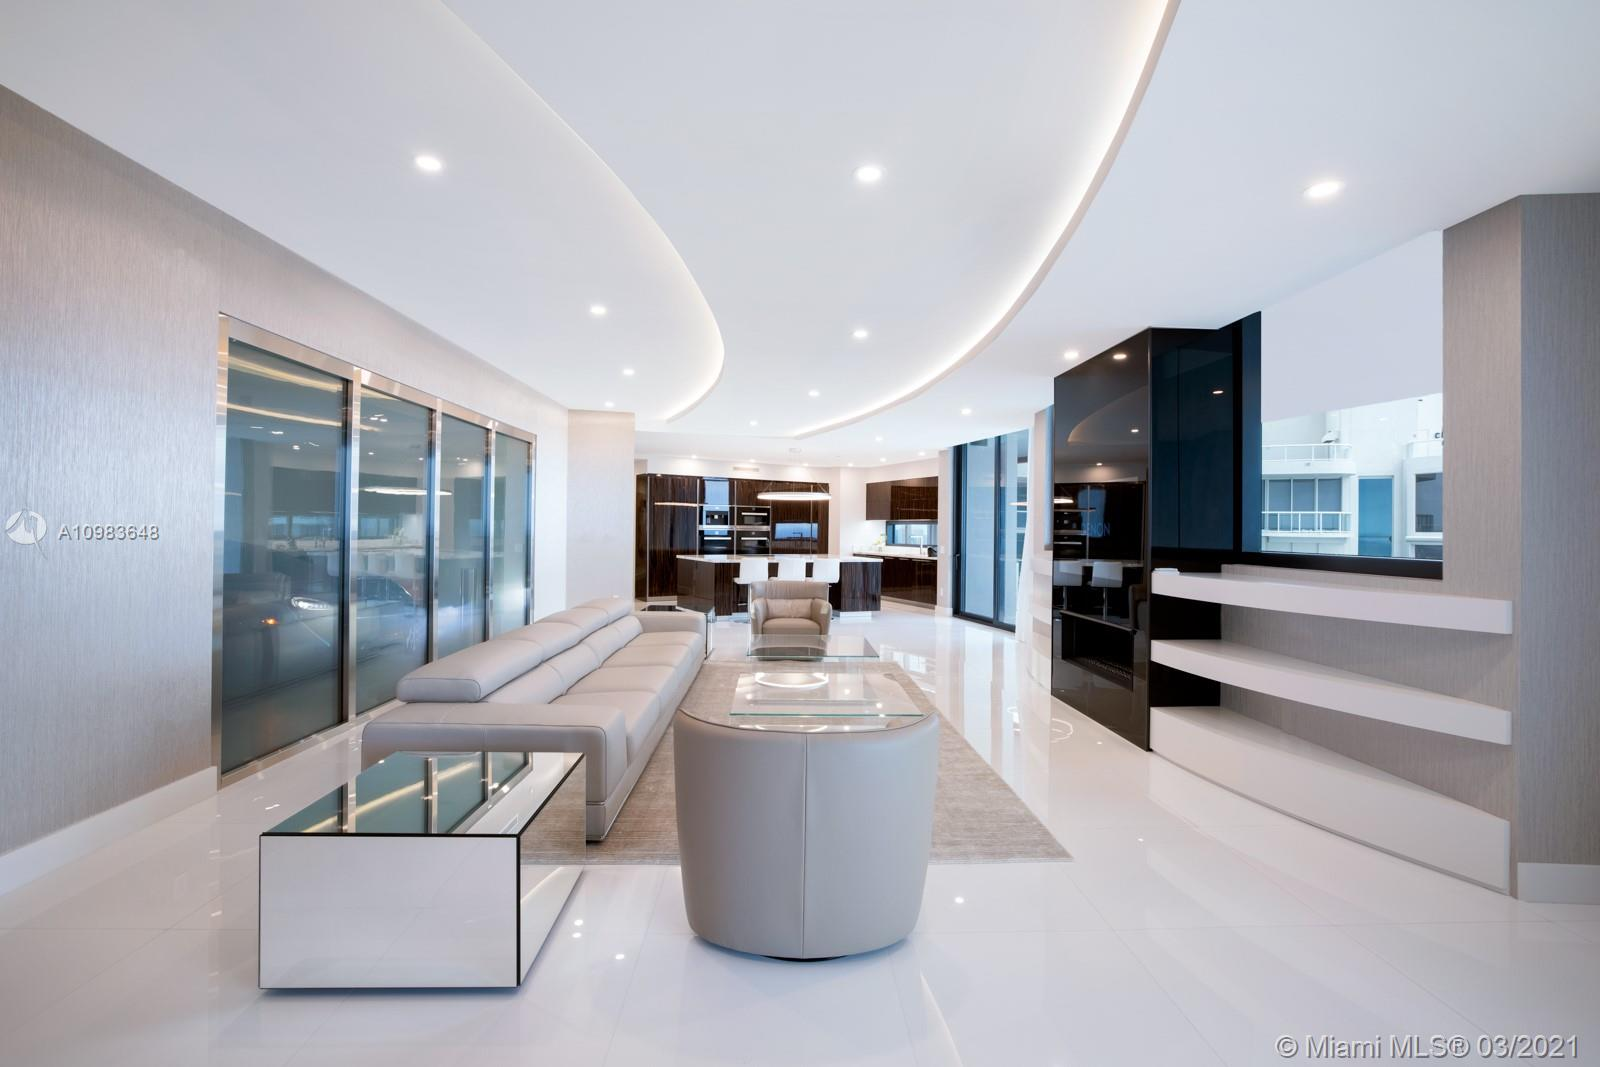 Experience a lifestyle like never before where you can drive into your apartment with your car and have your two cars showcased in your living room. This spacious residence features 3 large bedrooms with jacuzzi on balcony, walk in closets, gorgeous city, intracoastal, sunset, and twilight views. It is impeccably customized and finished by Rockstar Interiors complete with Savant home automation system and built in finger print door. Includes Miele appliances, private elevator, private restaurant with in room dining, building concierge, car concierge, full beach service, two pools, spa, car simulator, sports simulator, movie theatre, salon, bar and party room. Enjoy 5 star resort-like living in one of the most technologically advanced, exclusive, private, and secure buildings in the world!